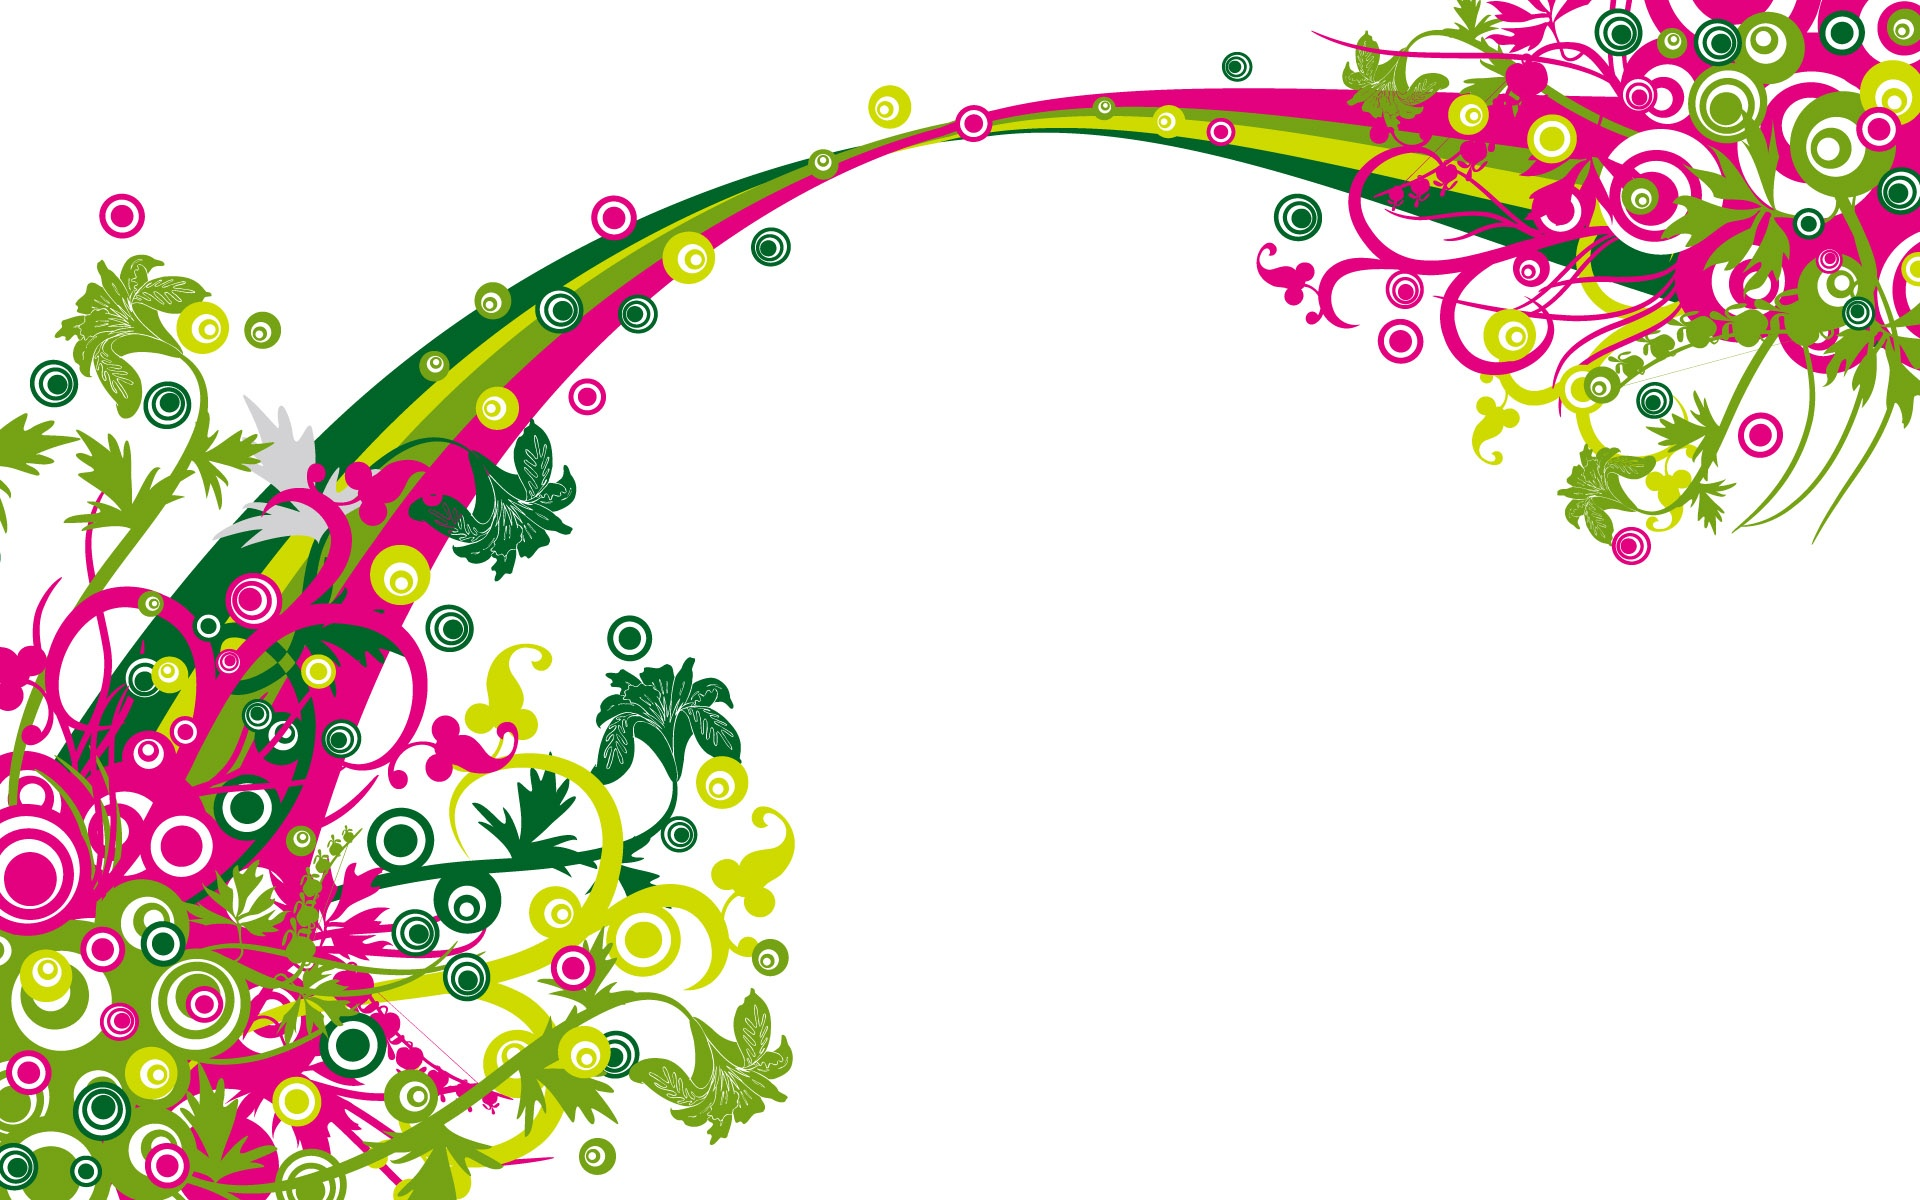 Design Images design vector #4219424, 1920x1200 | all for desktop